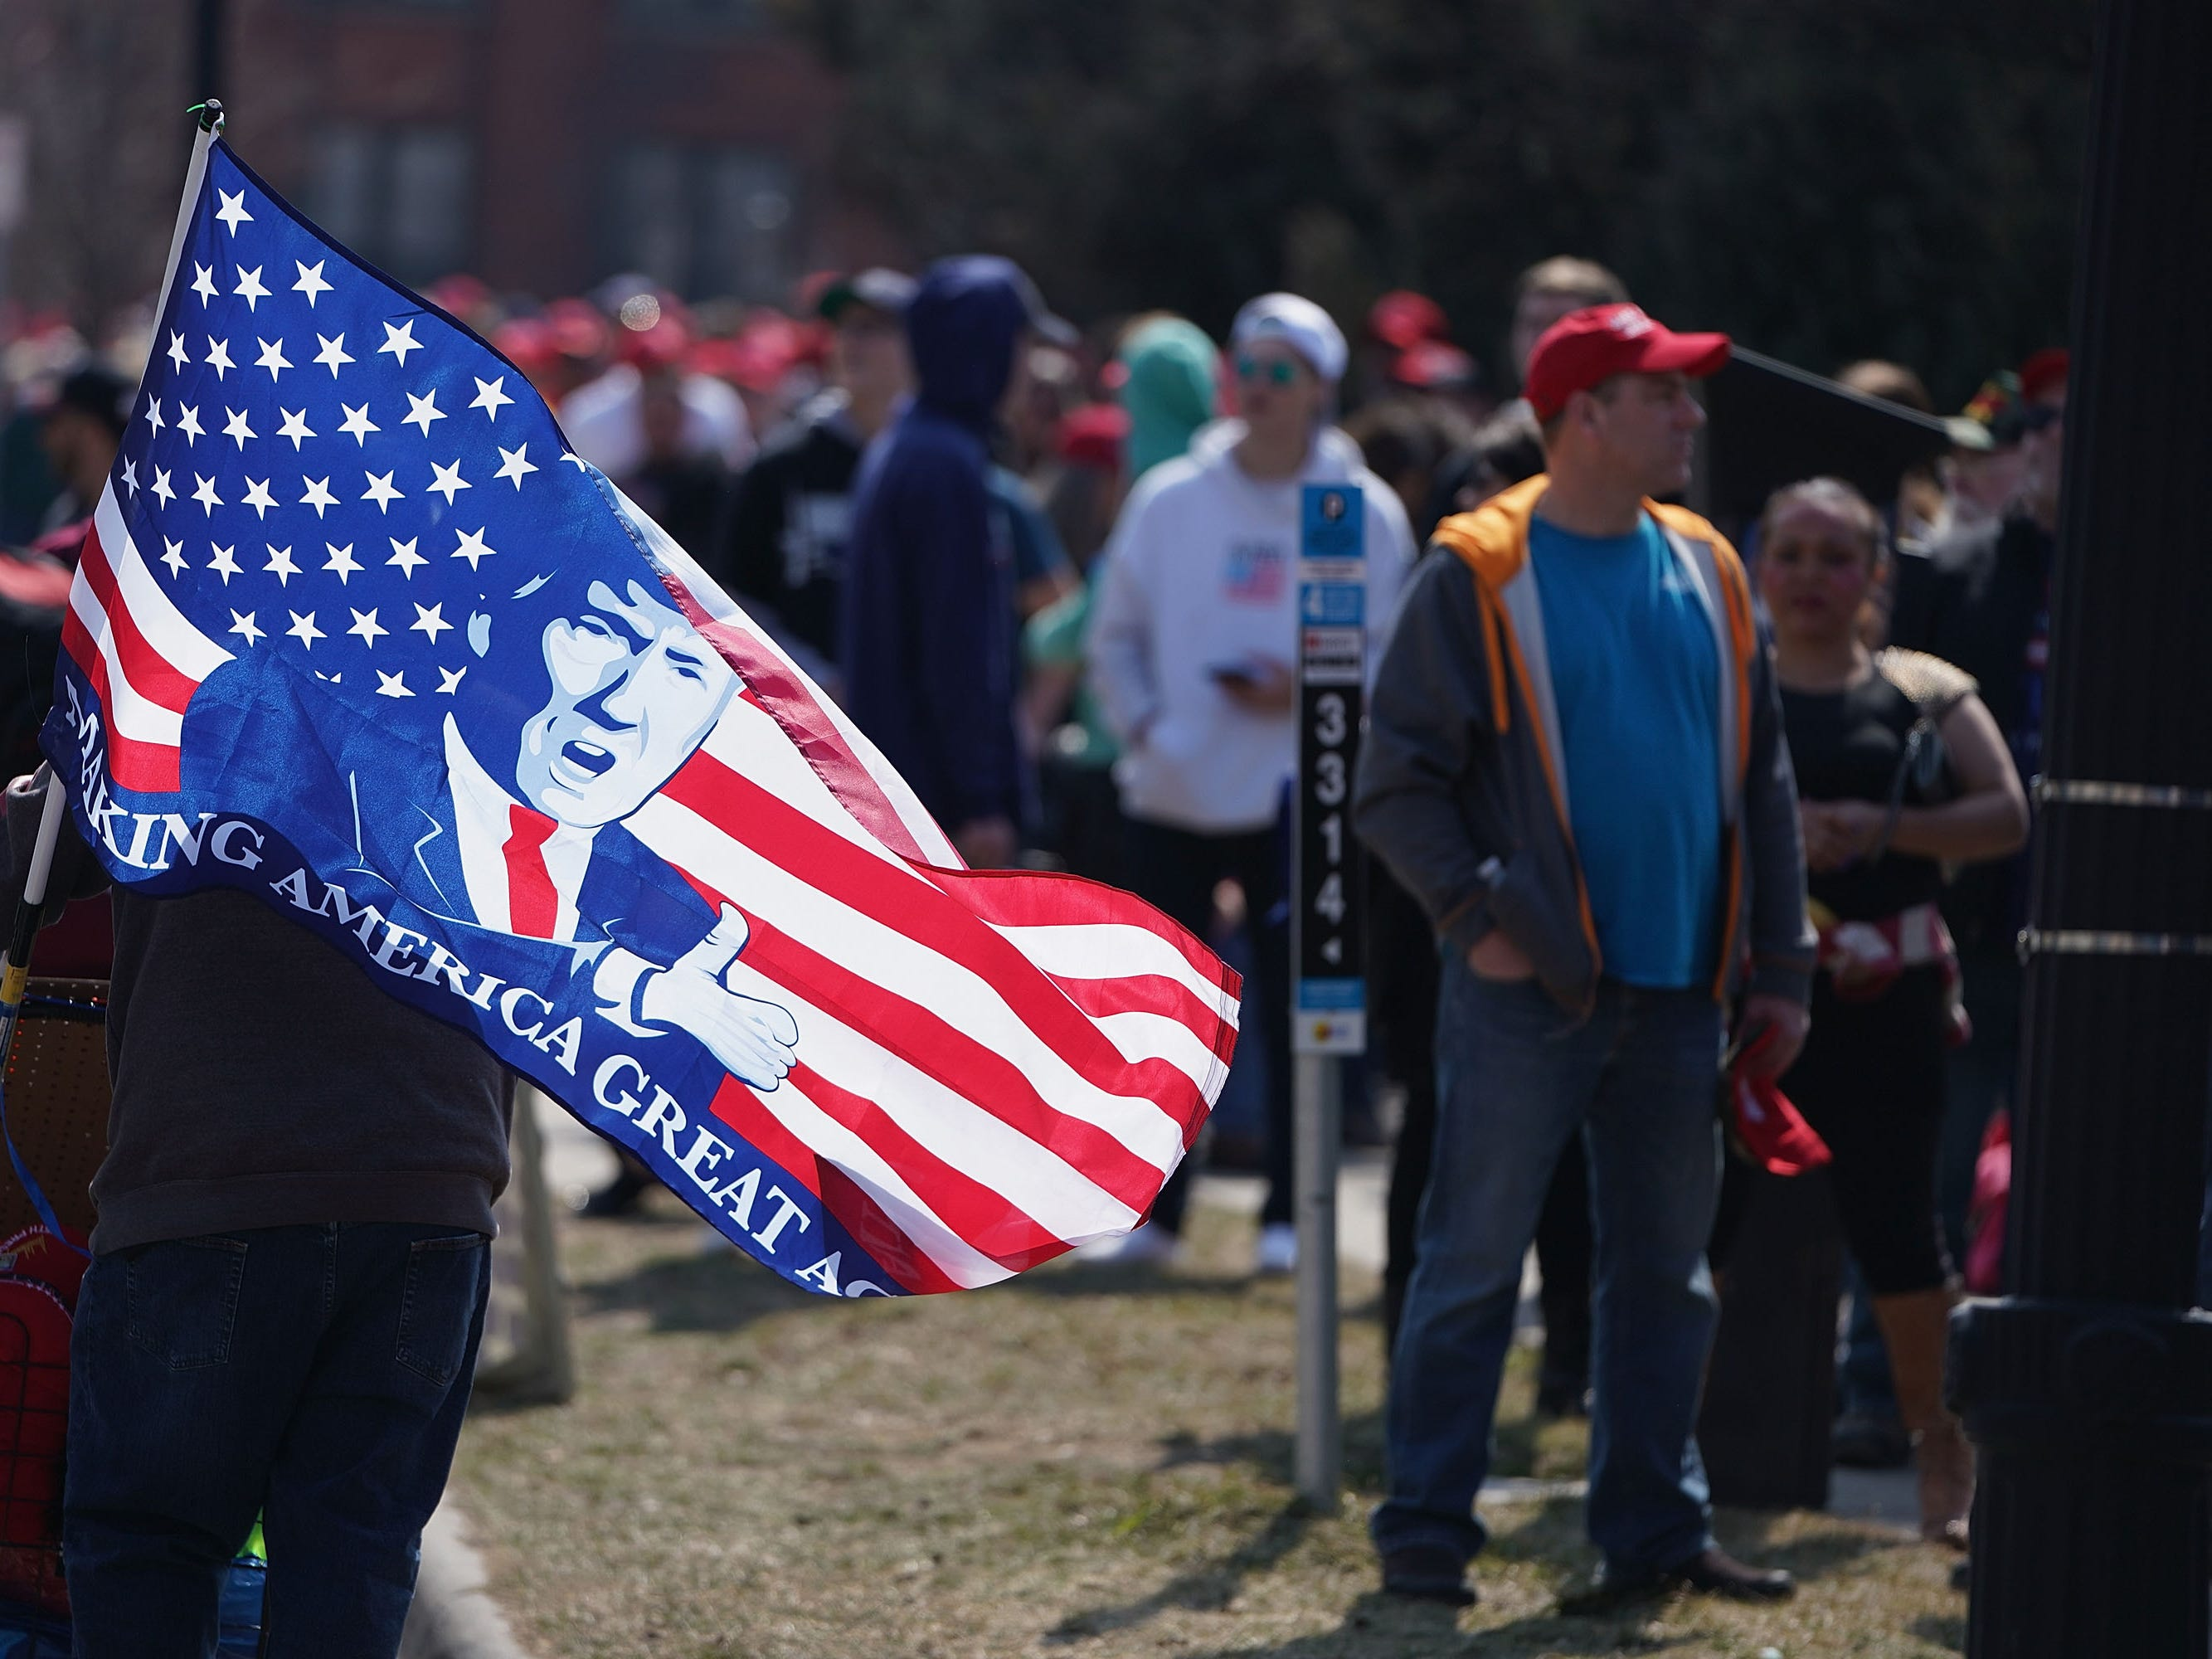 Supporters wait in line before the start of a rally with President Donald Trump at the Van Andel Arena on March 28, 2019 in Grand Rapids, Michigan. Grand Rapids was the final city Trump visited during his 2016 campaign.